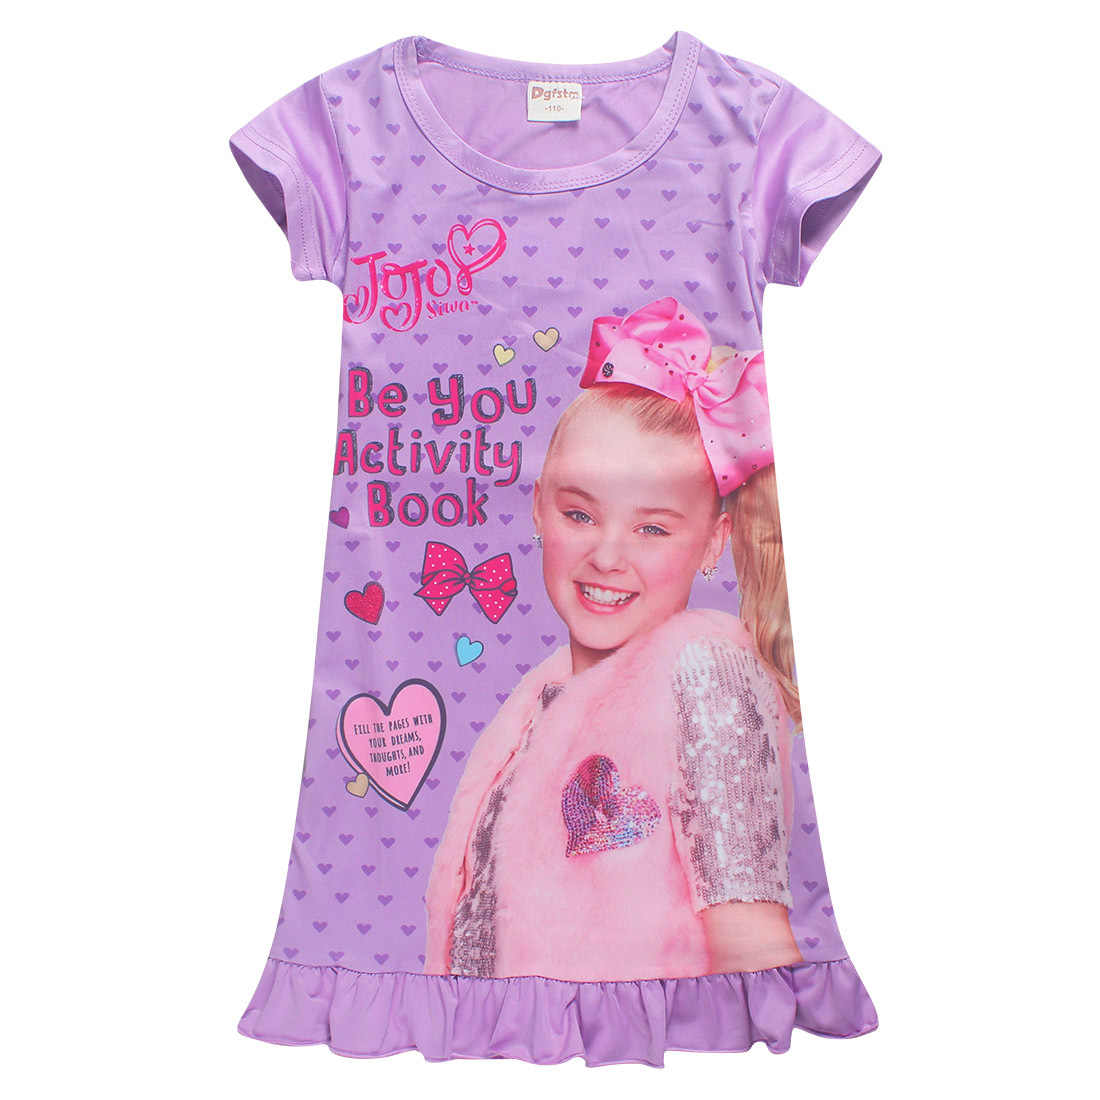 New Summer Jojo Siwa Dresses For Girls Dress Kids Clothes Sleepwear Princess Birthday Party Hair Bow